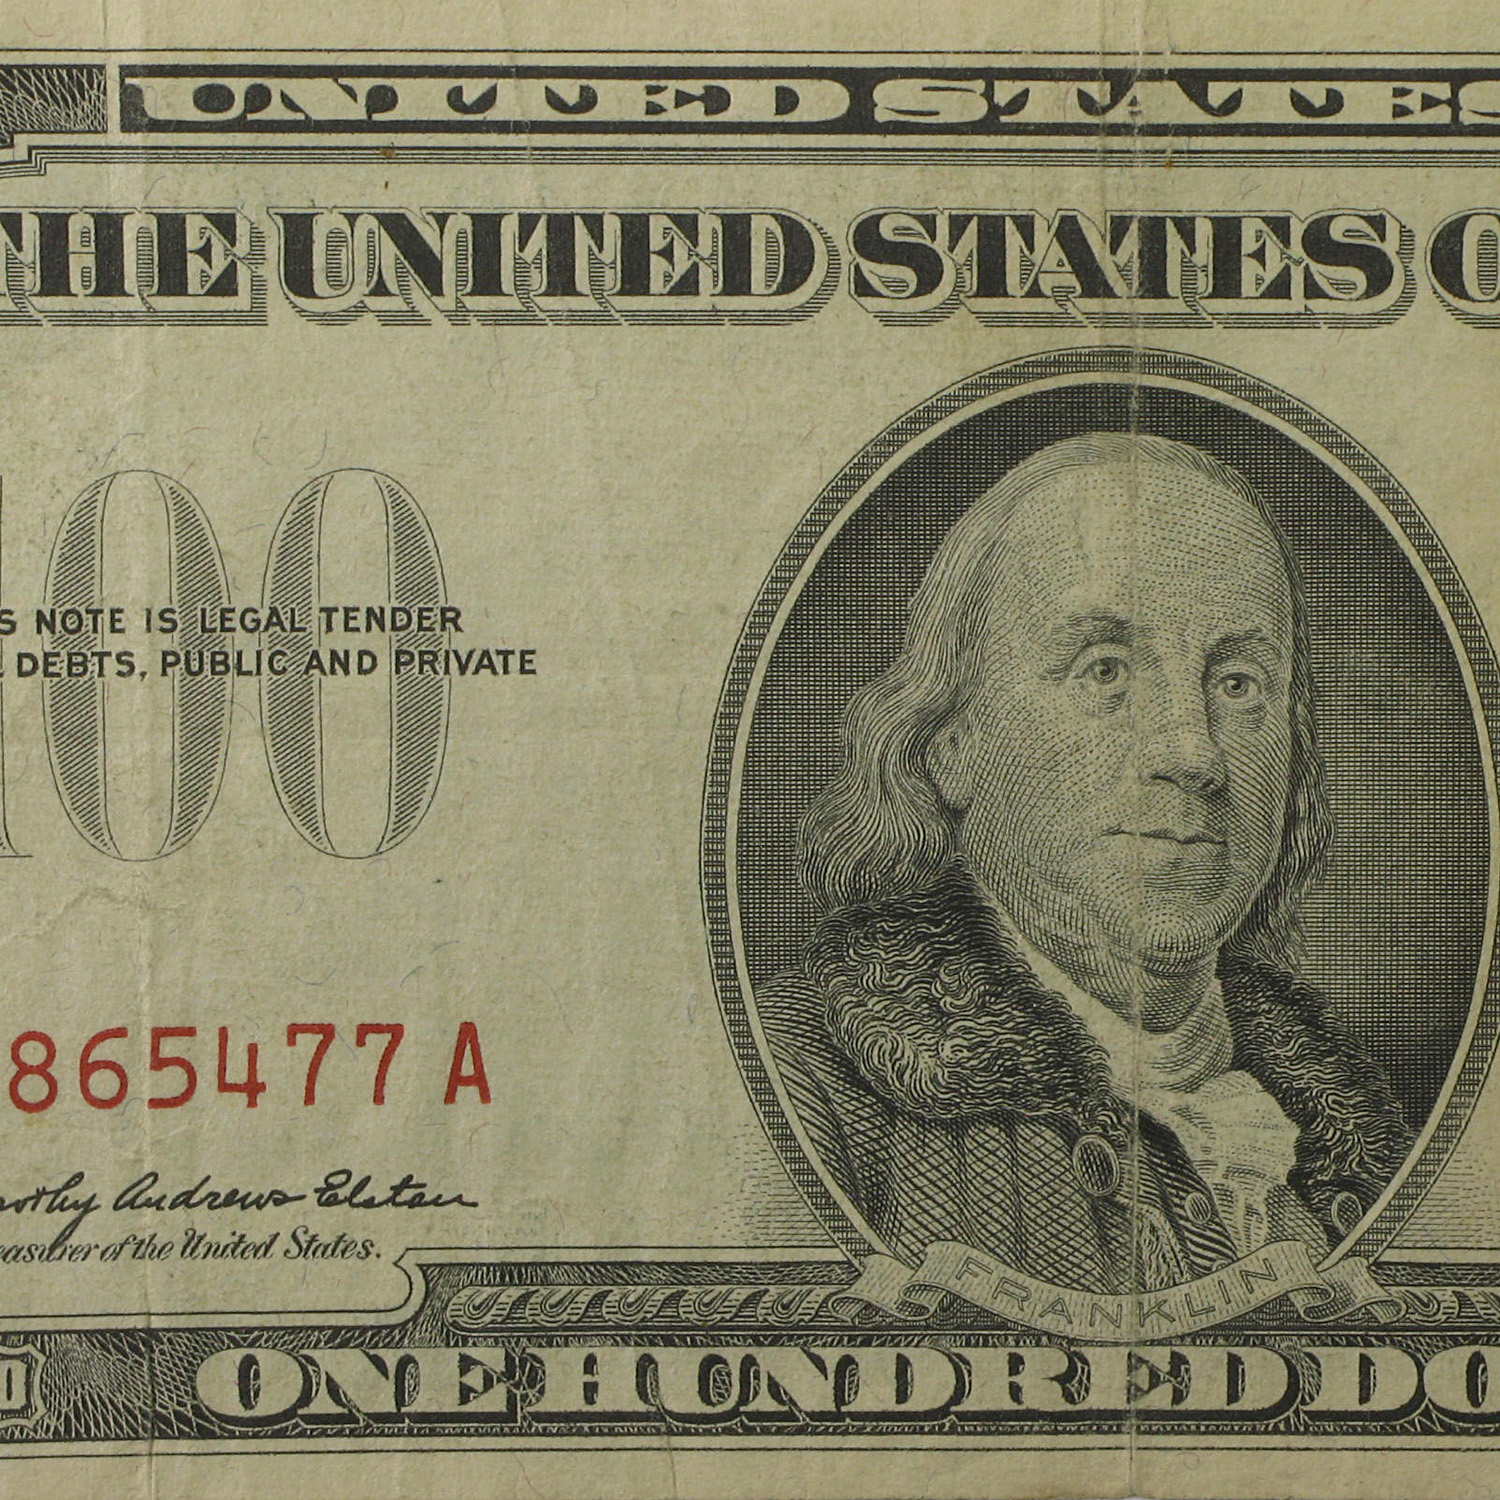 1966-A $100 U.S. Note Red Seal VF